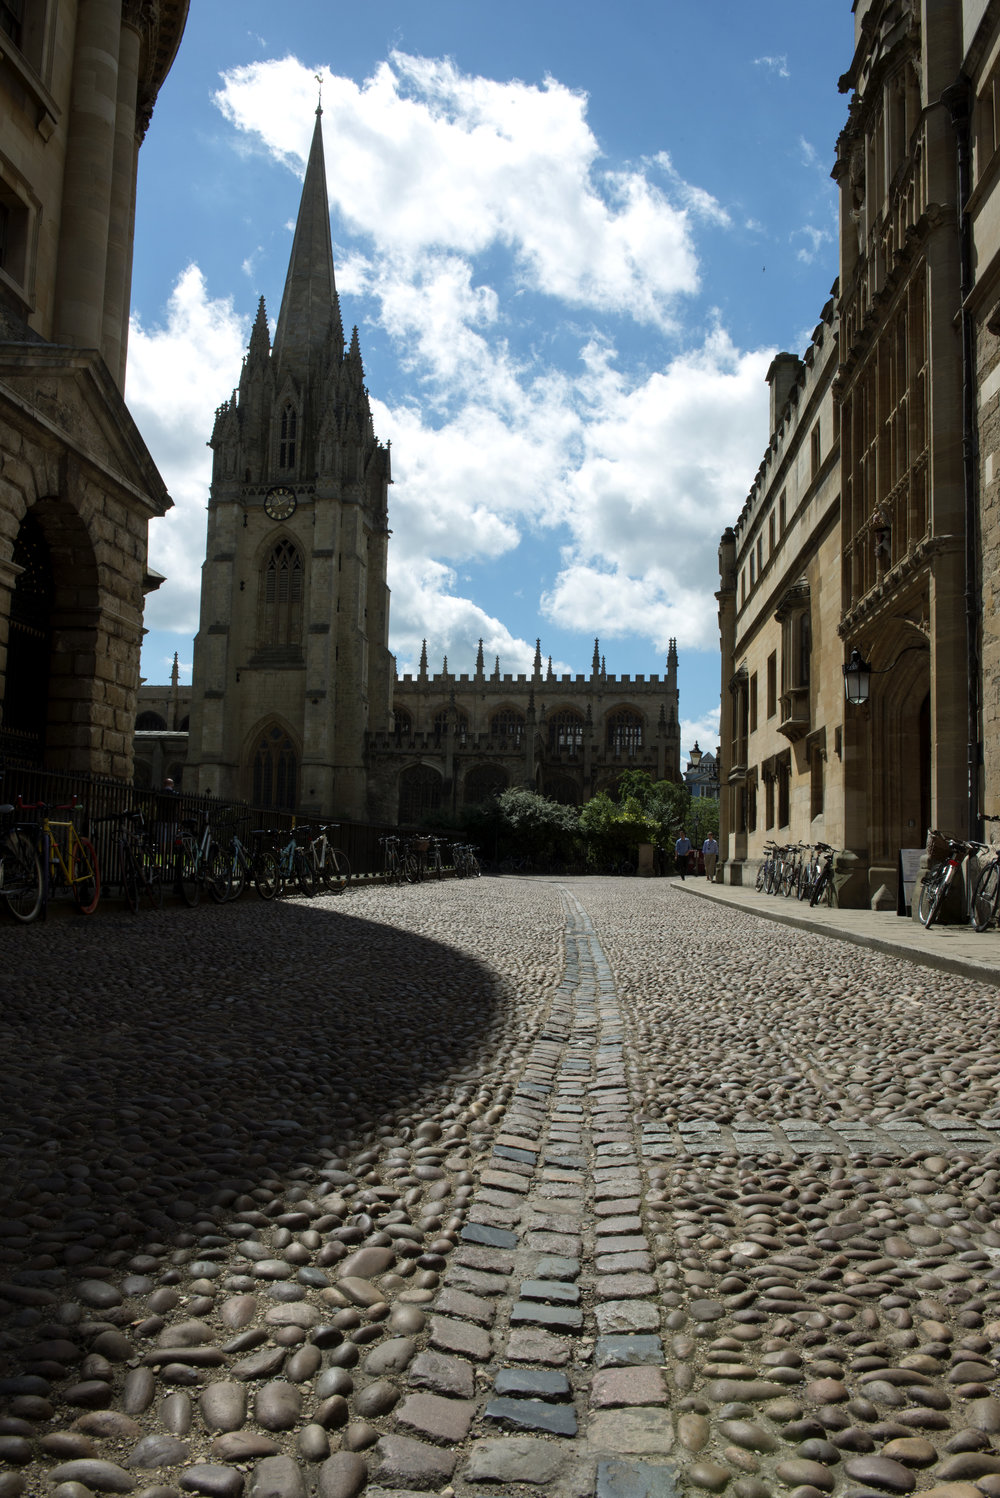 Our Story - In the early 8th Century Frideswide, a young Saxon princess, defied convention and refusing an arranged marriage came to Oxford where she established her community. Her priory was made up of men and women who committed to prayer, to proclamation of the gospel, and to Christian service, and were highly influential in the foundation of the church in this city. Over a thousand years later, Christians from different backgrounds are gathering in The Community of St Frideswide.